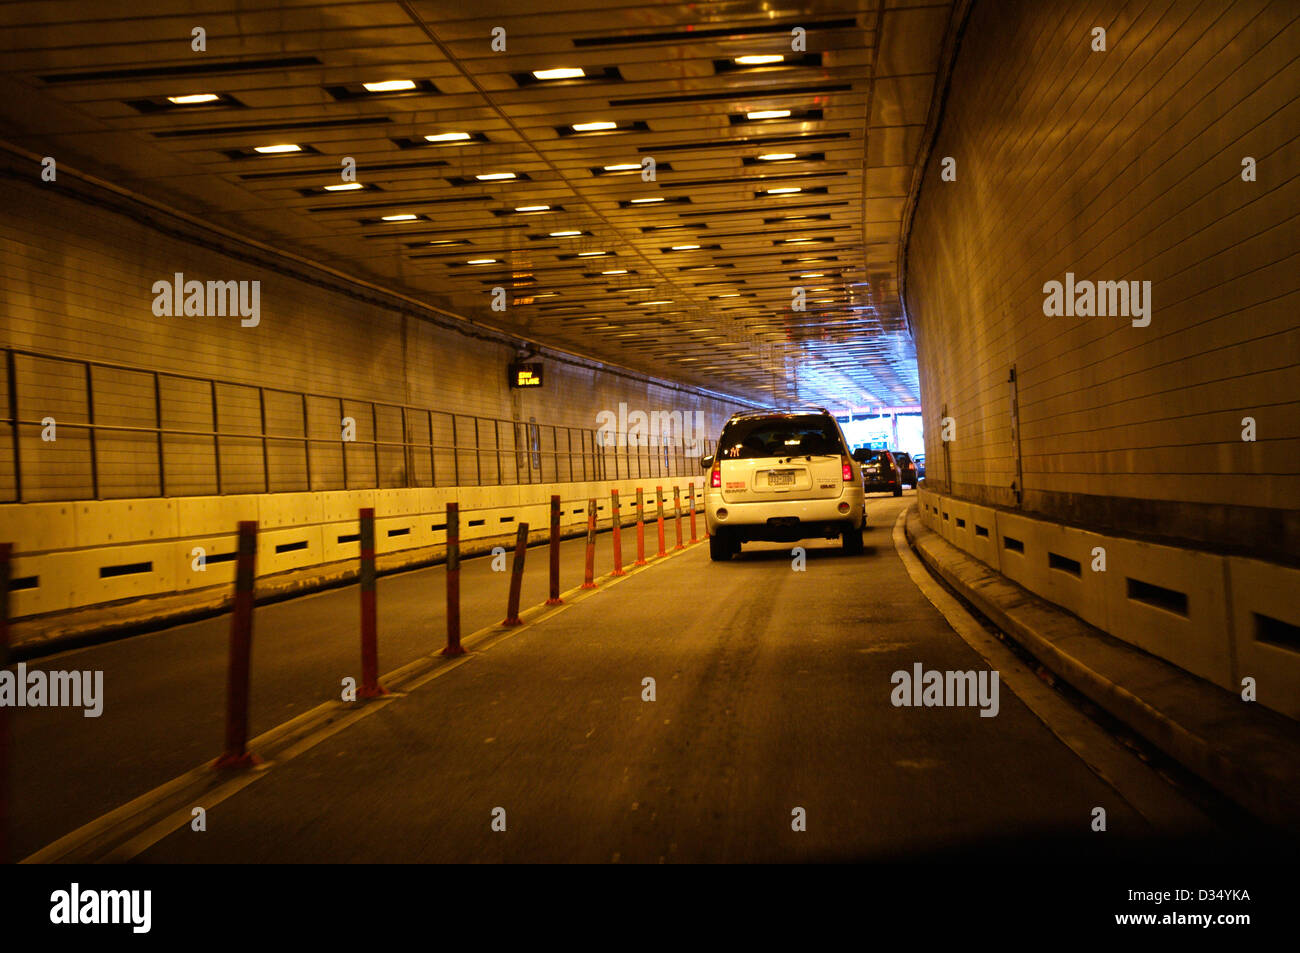 exiting hugh carey formerly brooklyn battery tunnel at lower stock photo 53584590 alamy. Black Bedroom Furniture Sets. Home Design Ideas